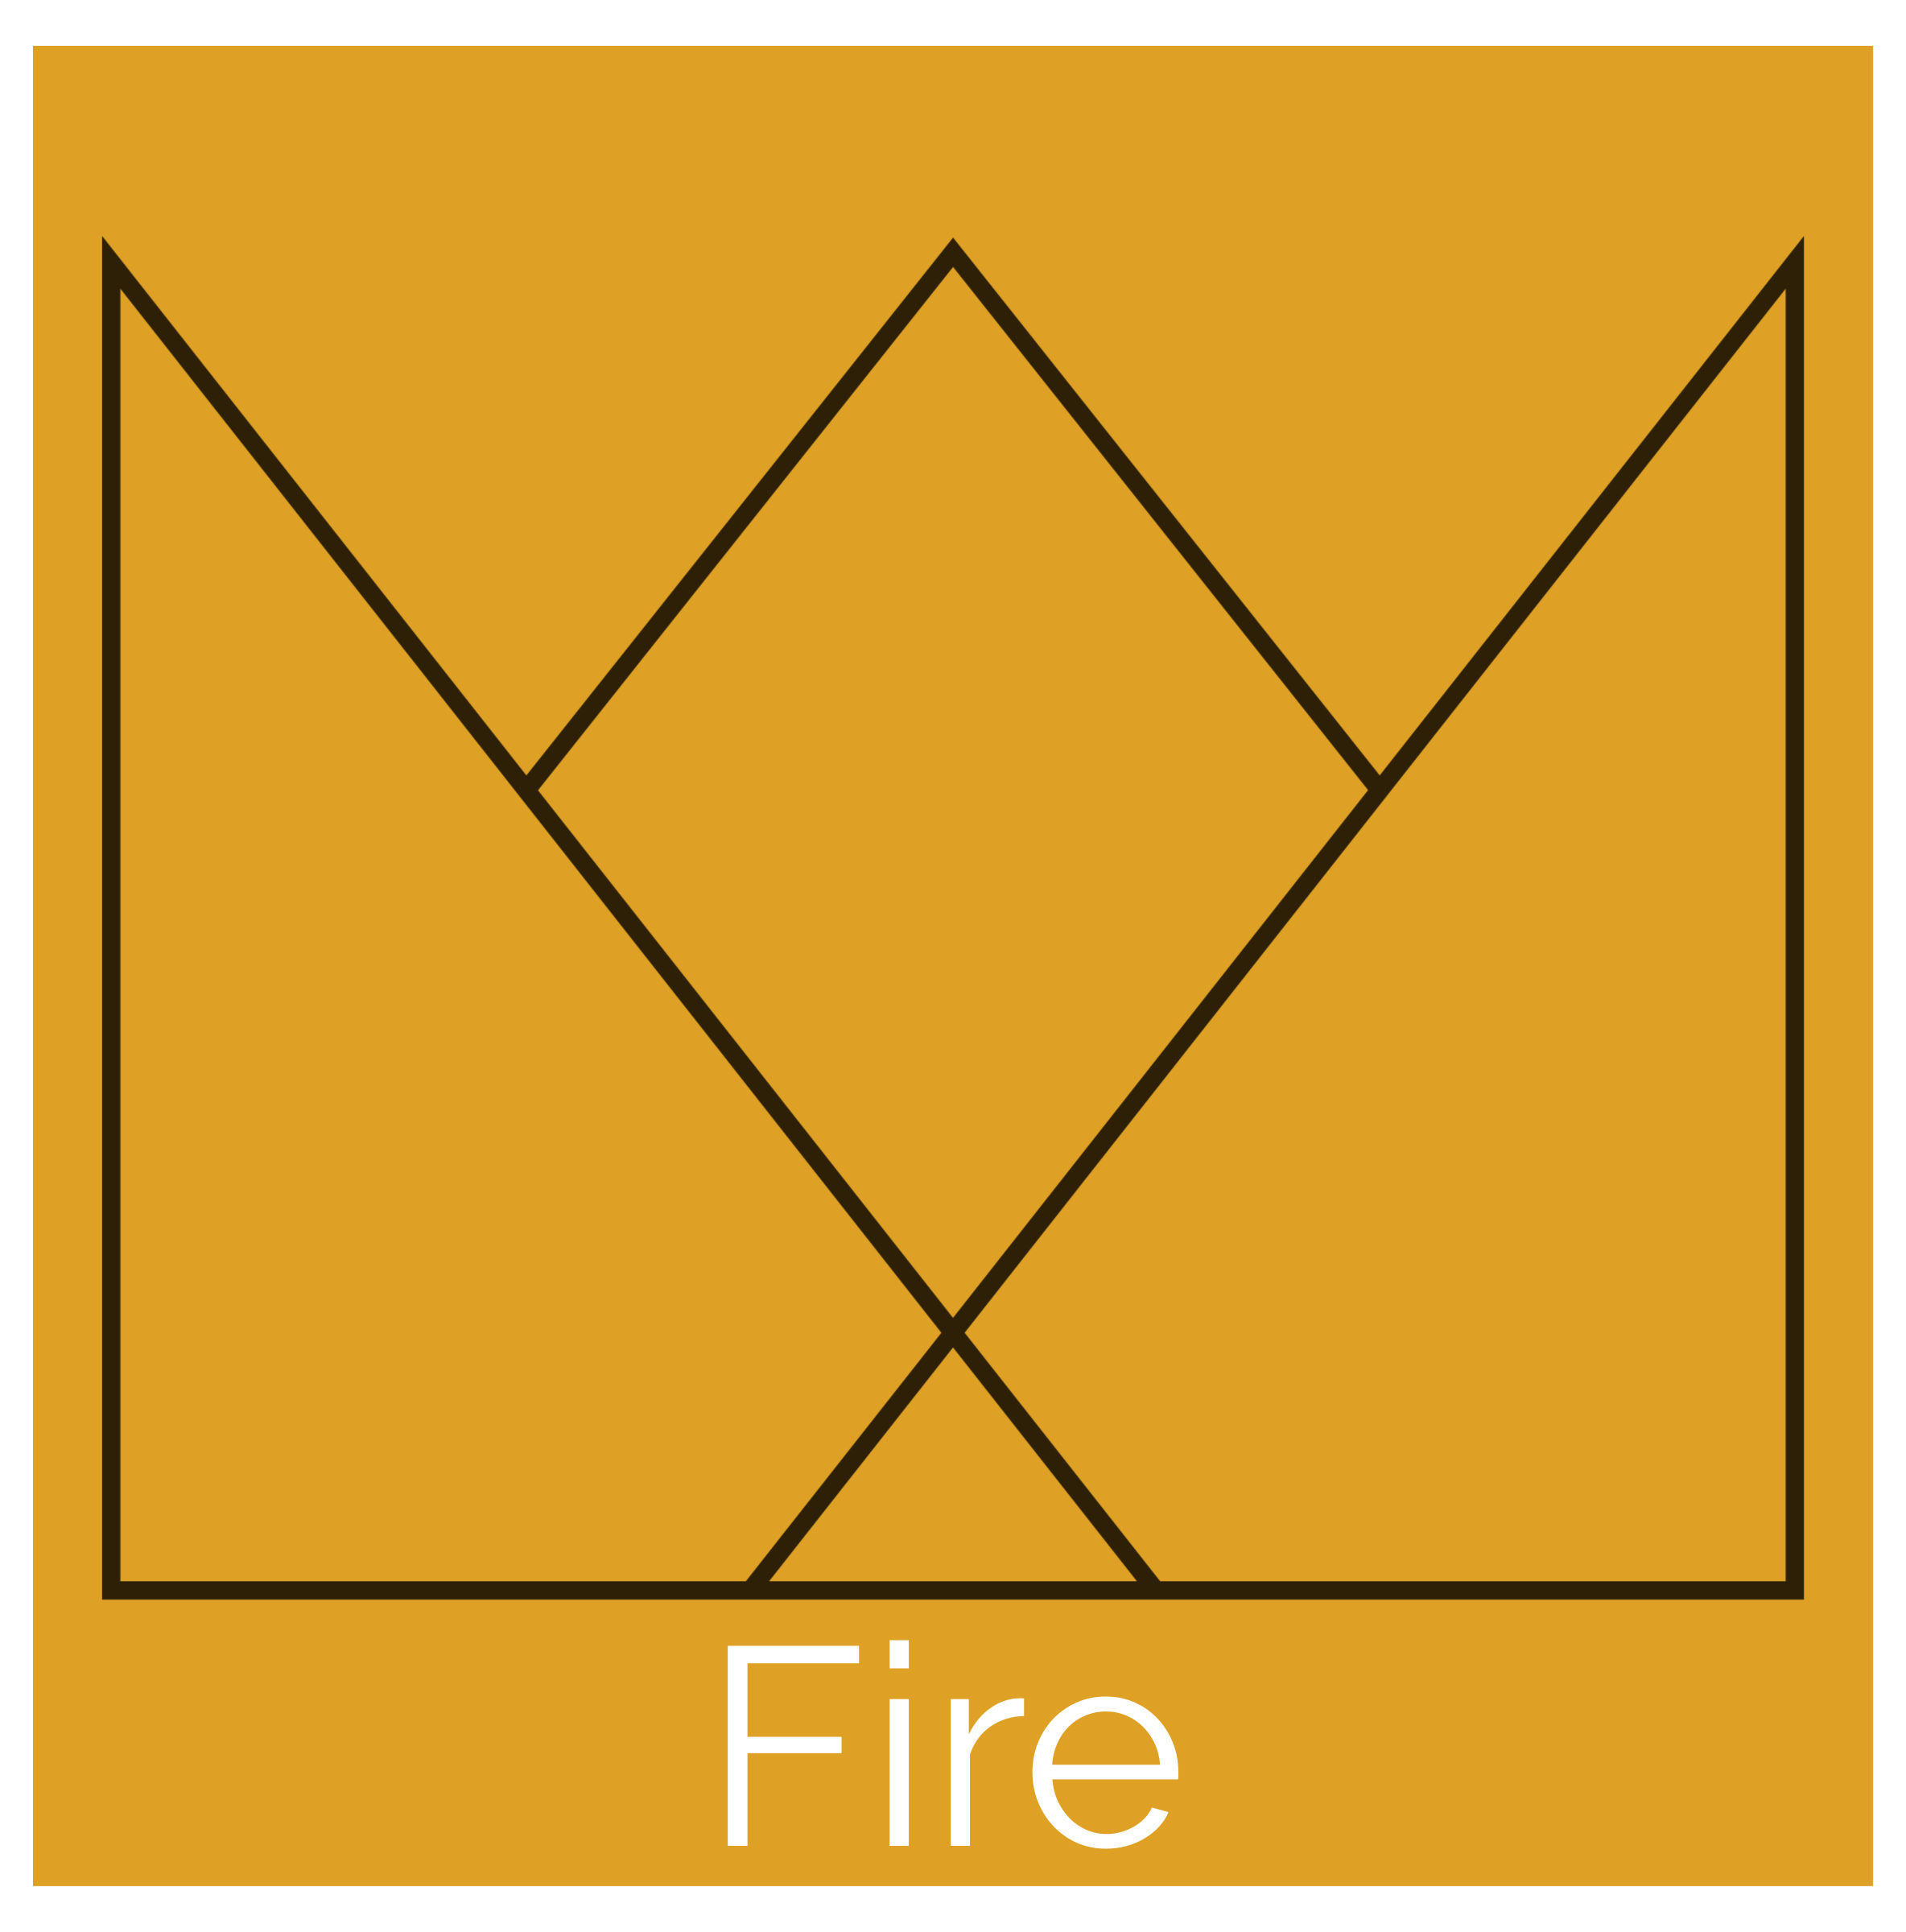 Fire Box Big.png